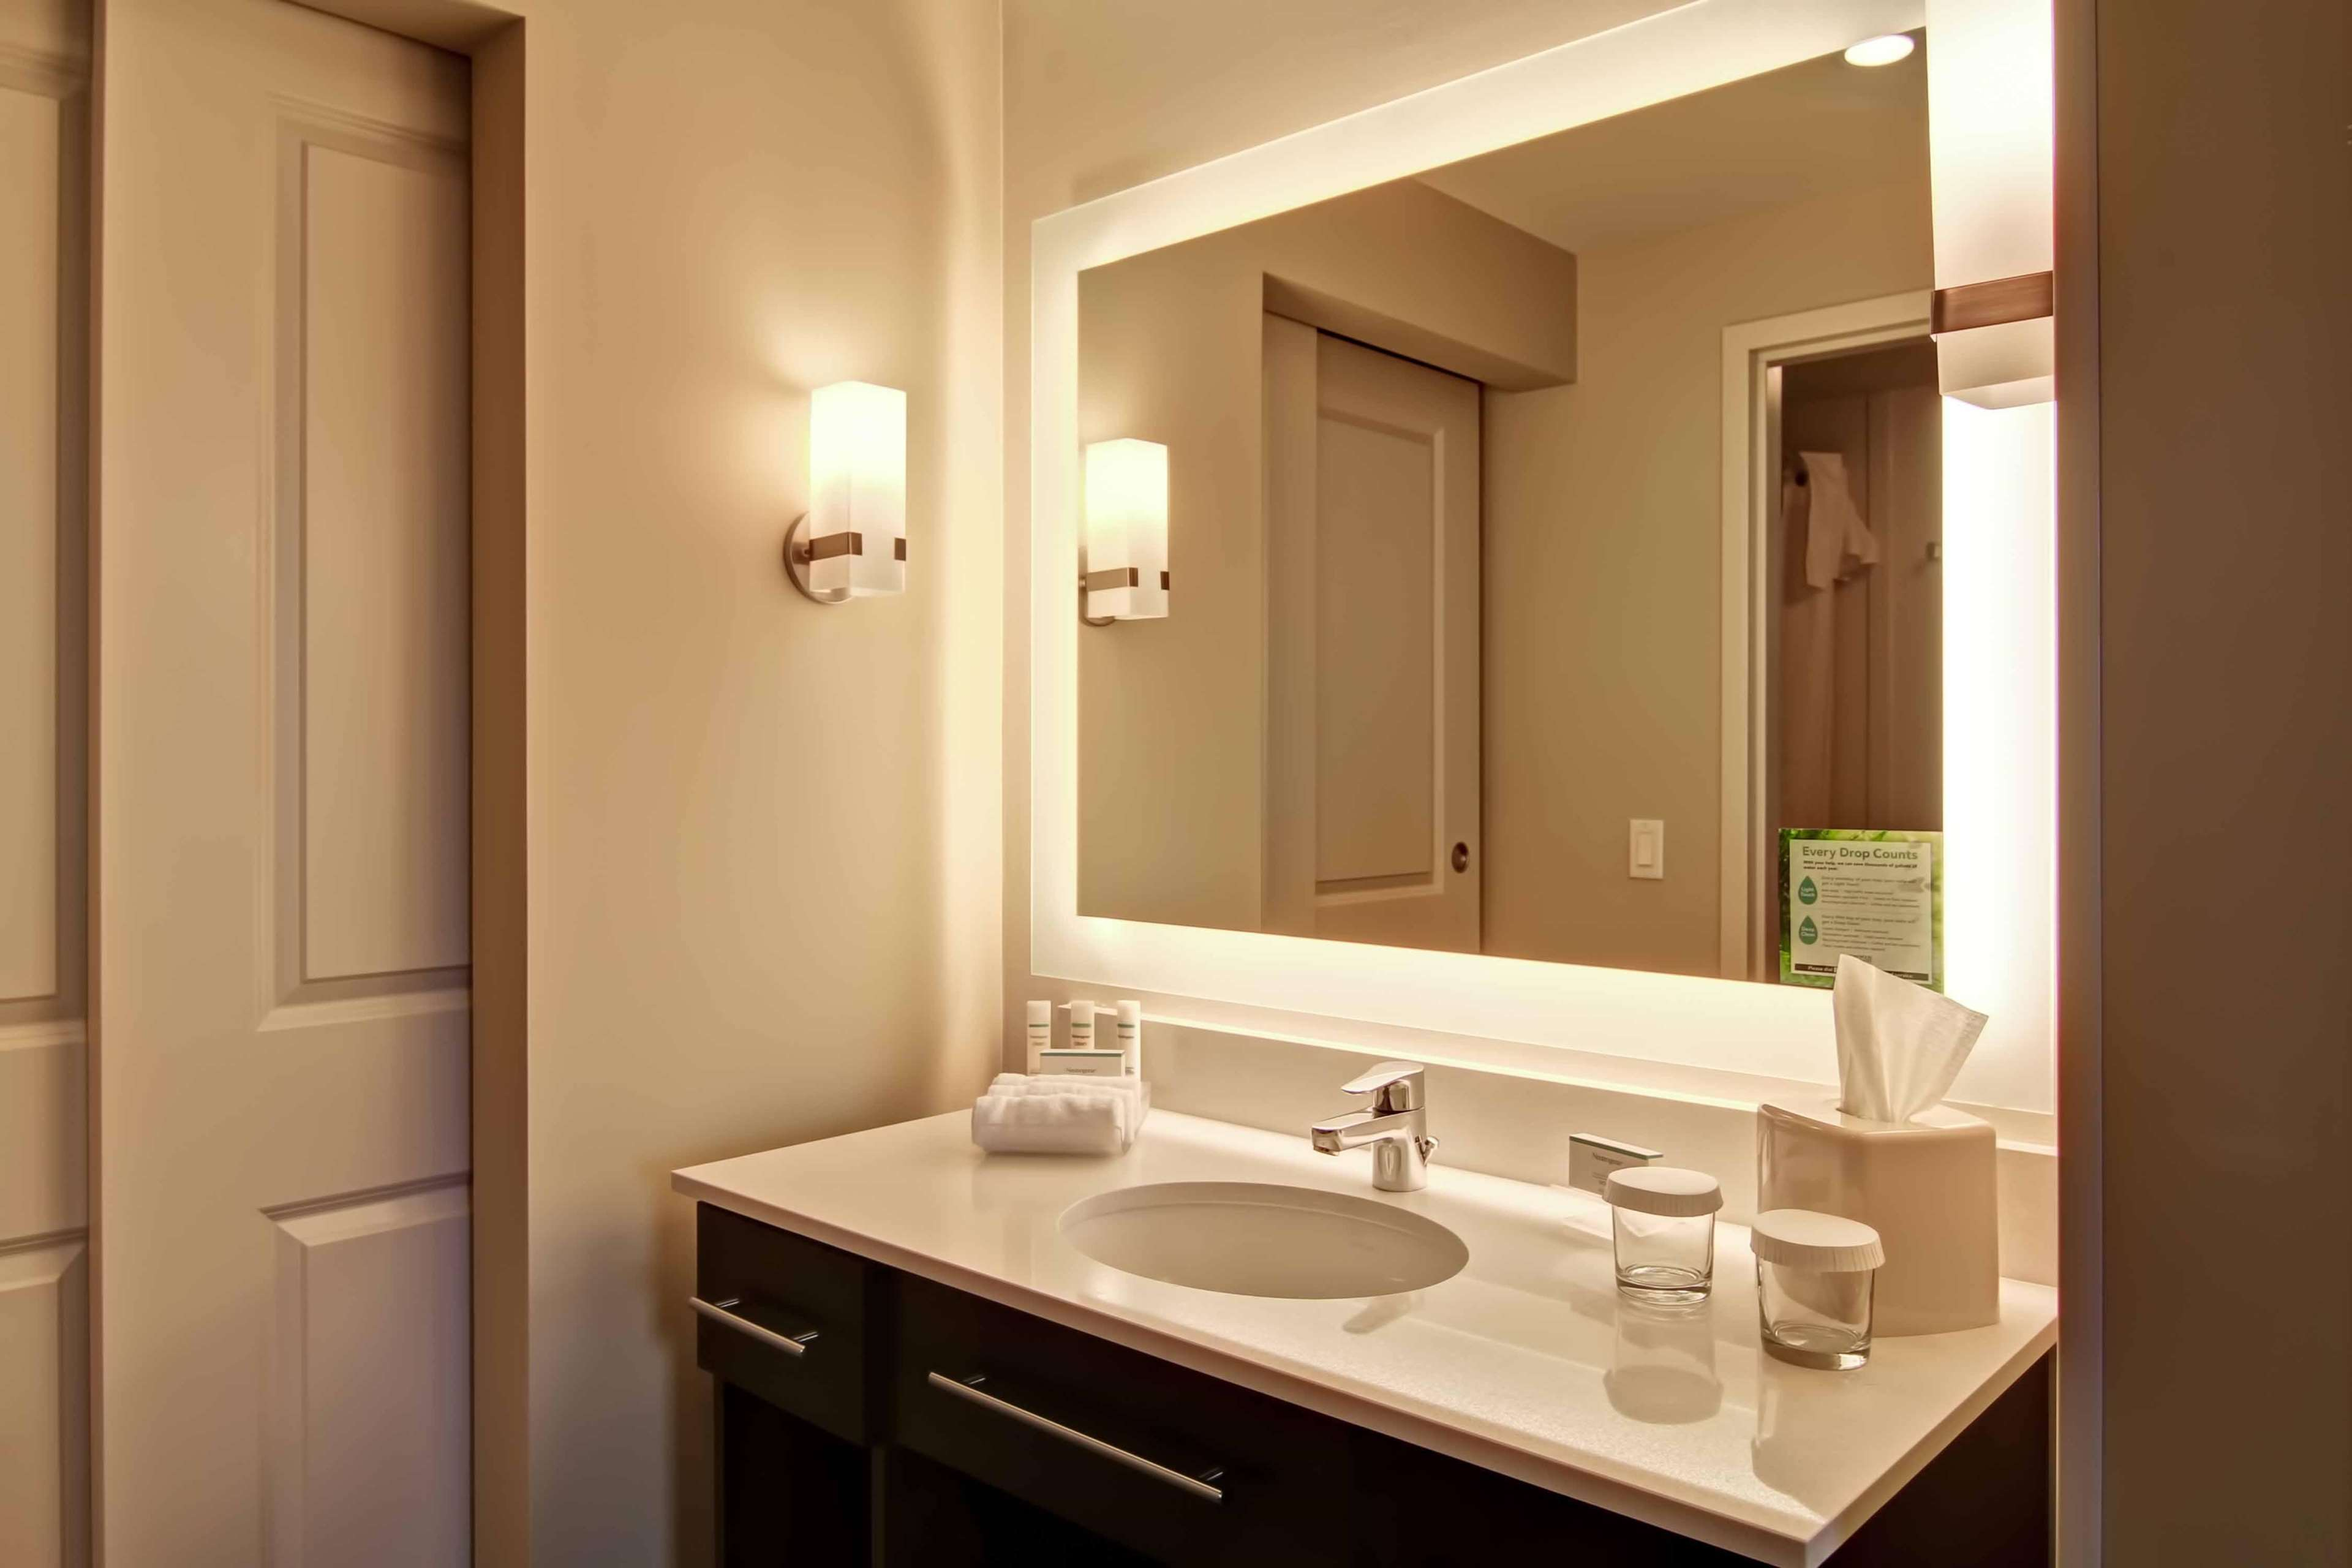 Homewood Suites by Hilton Seattle-Issaquah image 30